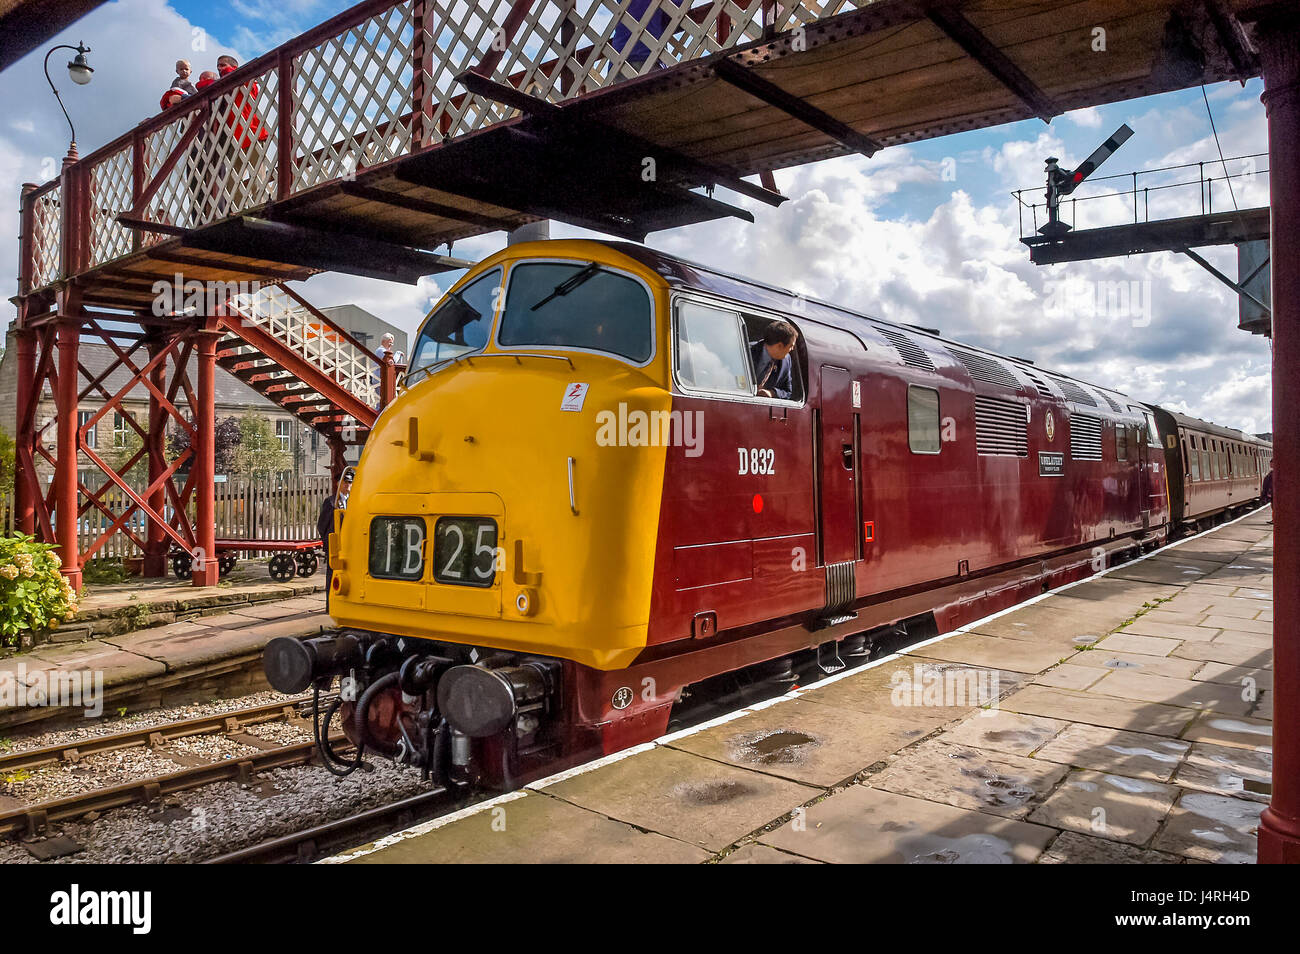 East Lancs railway steam trains at Ramsbottom station. Sept 2003 D832 is one of two preserved Class 42 'Warships' - Stock Image